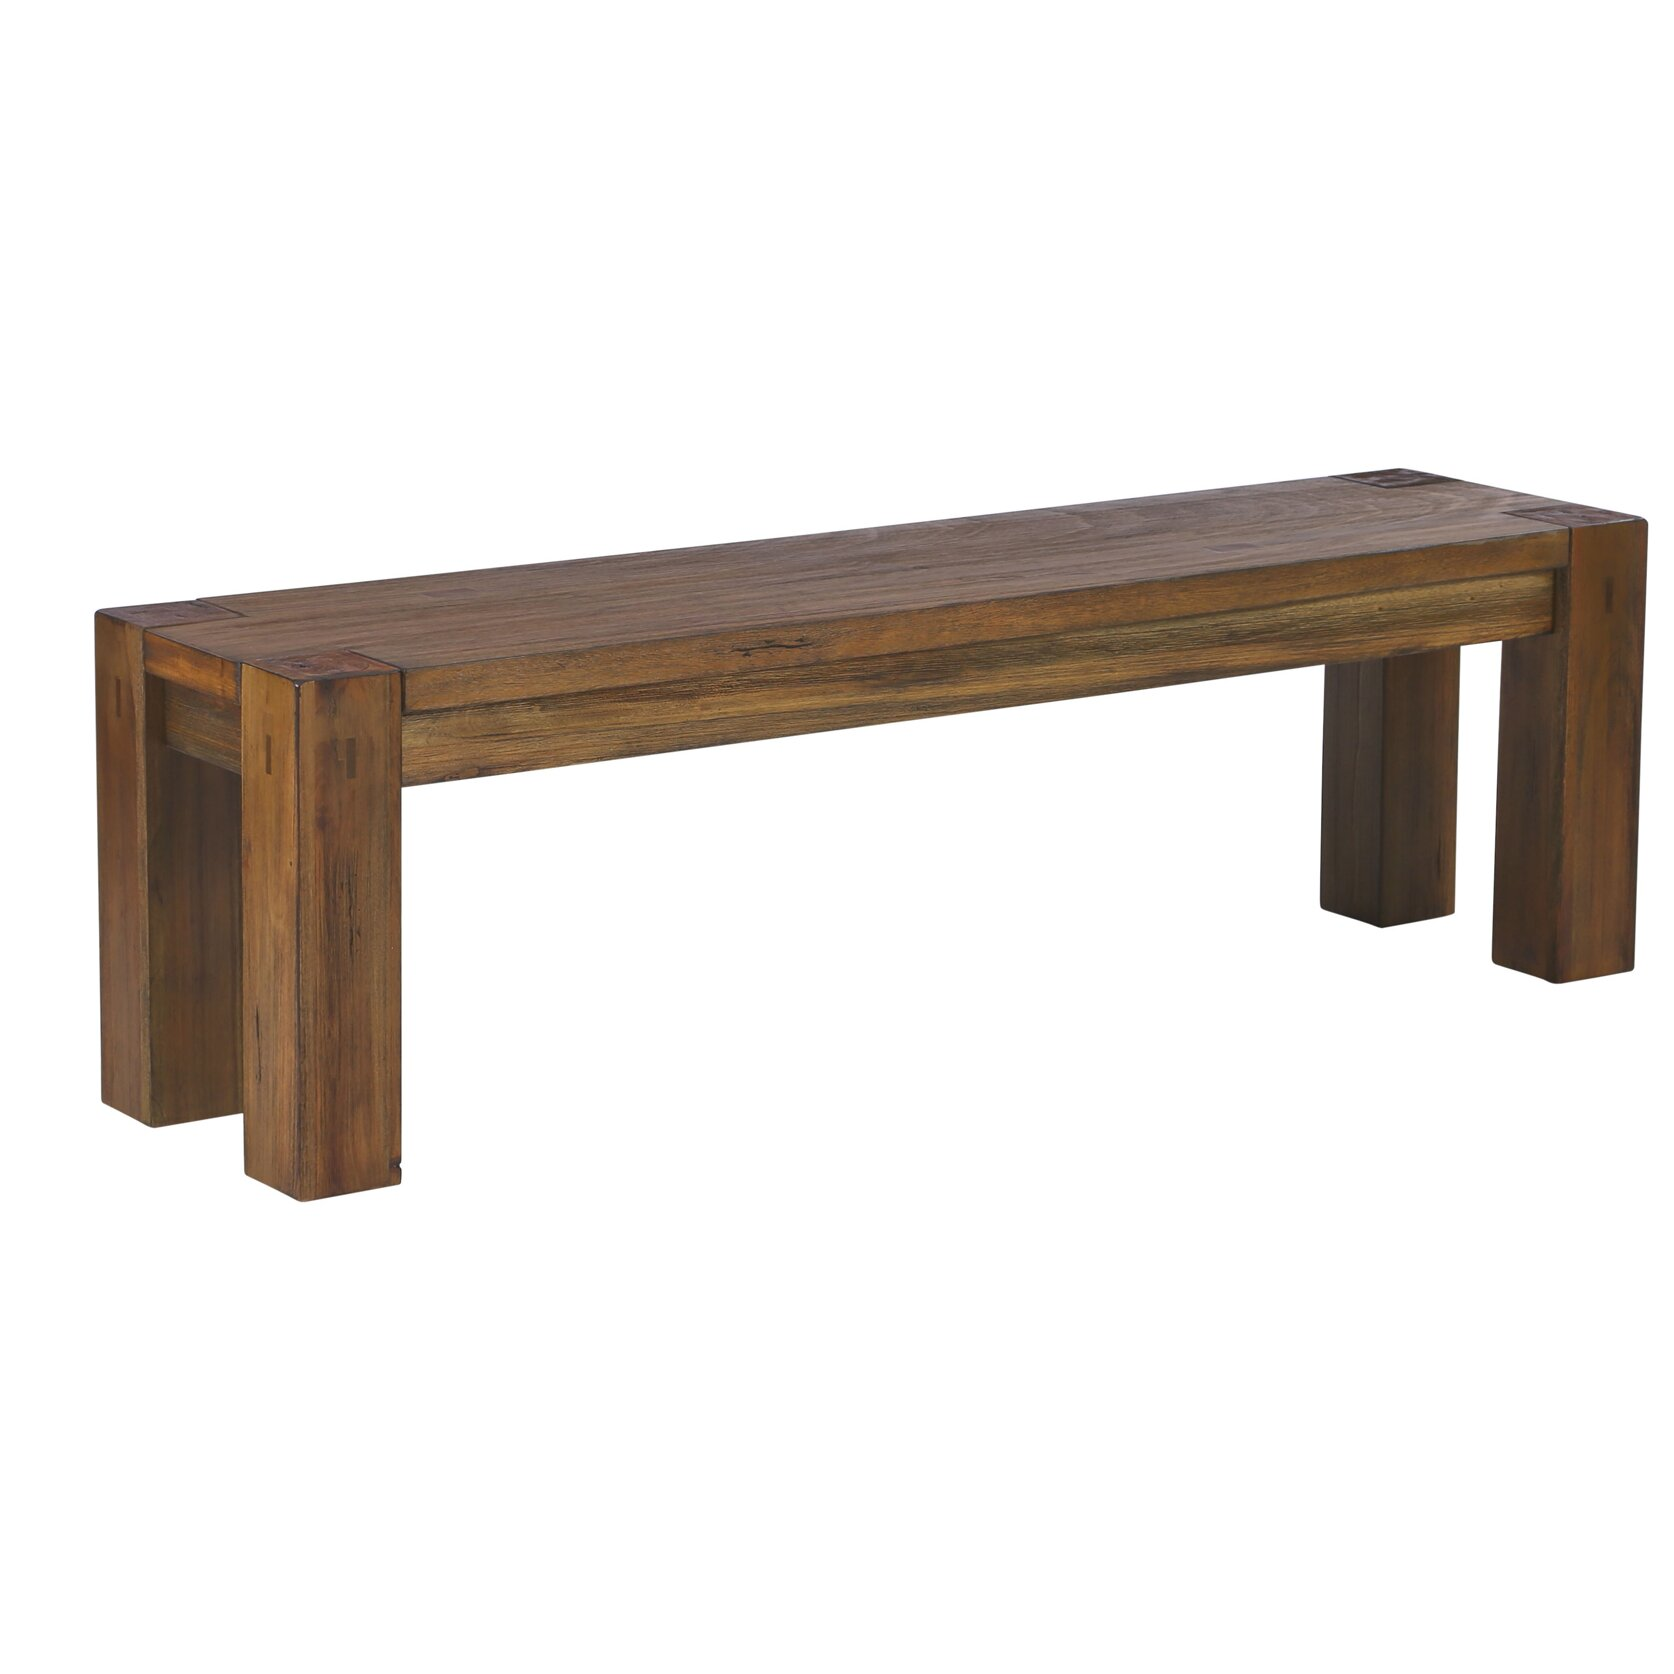 #654932 Mercury Row Venus Wood Kitchen Bench & Reviews Wayfair with 1674x1674 px of Most Effective Wooden Kitchen Benches 16741674 wallpaper @ avoidforclosure.info